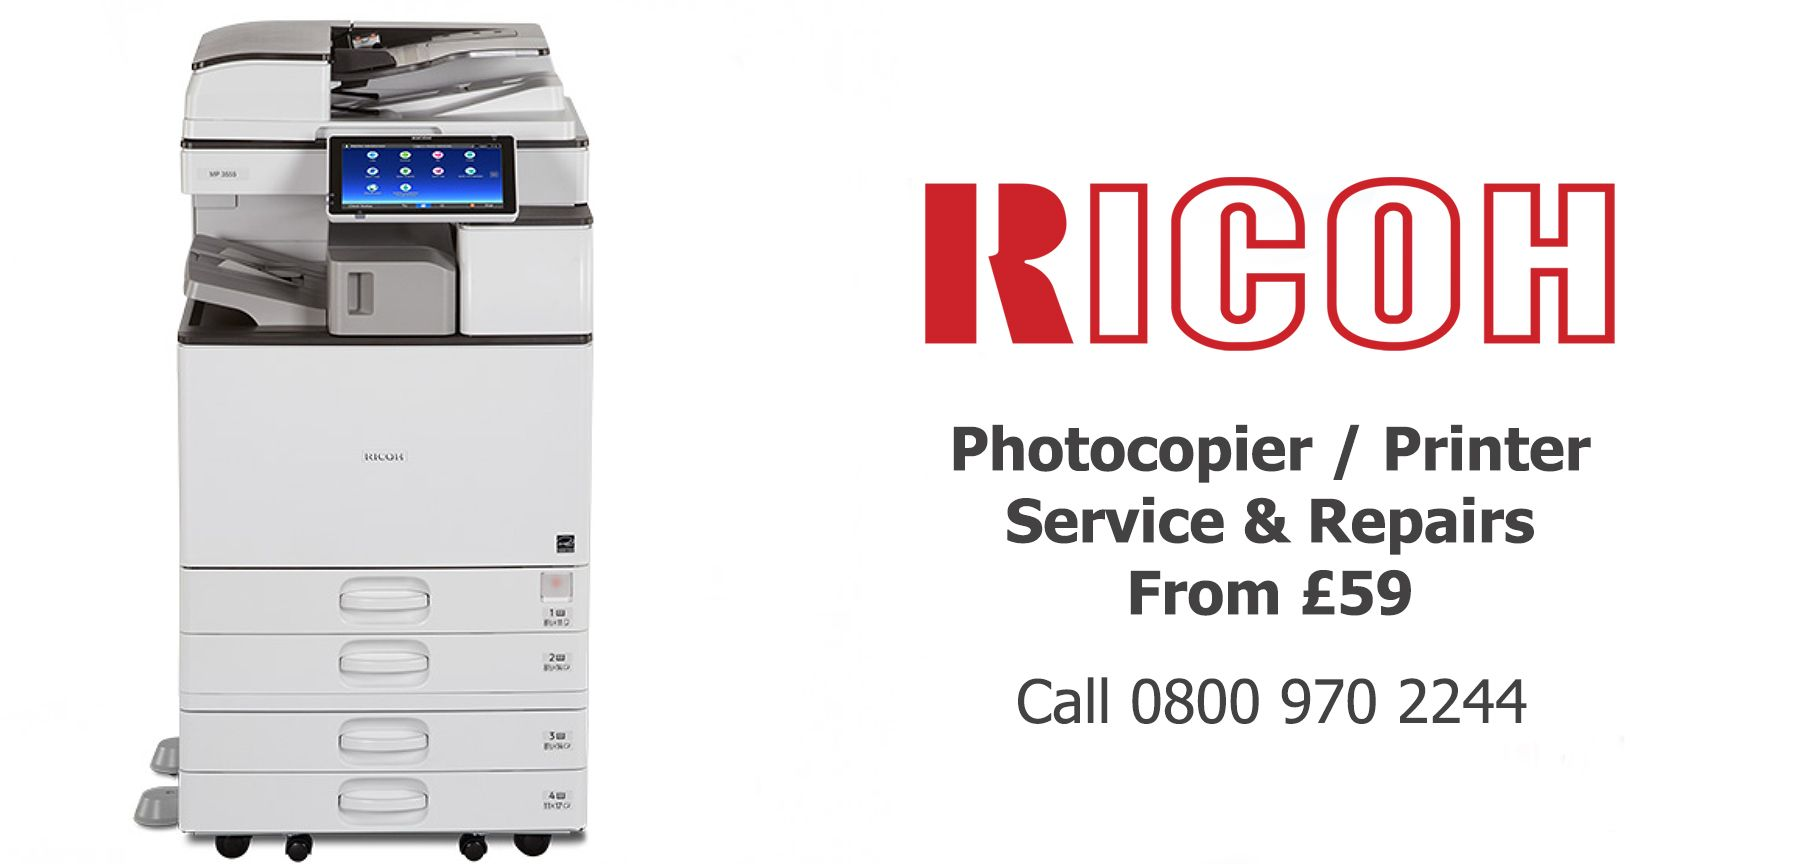 Ricoh photocopier service and printer repairs lancashire